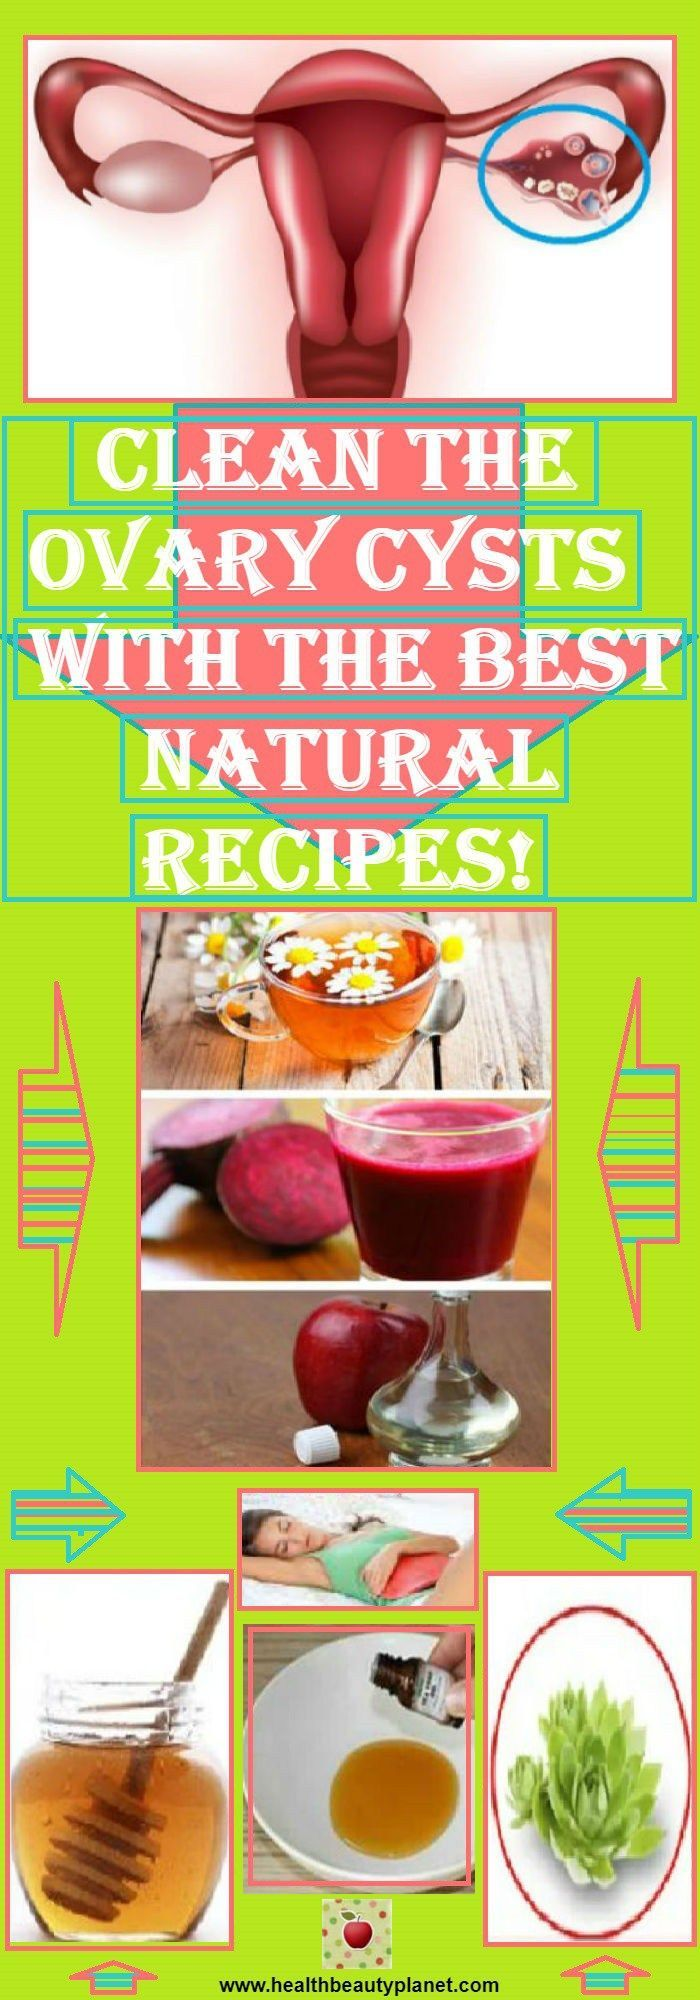 Clean The Ovary Cysts With The Best Natural Recipes!